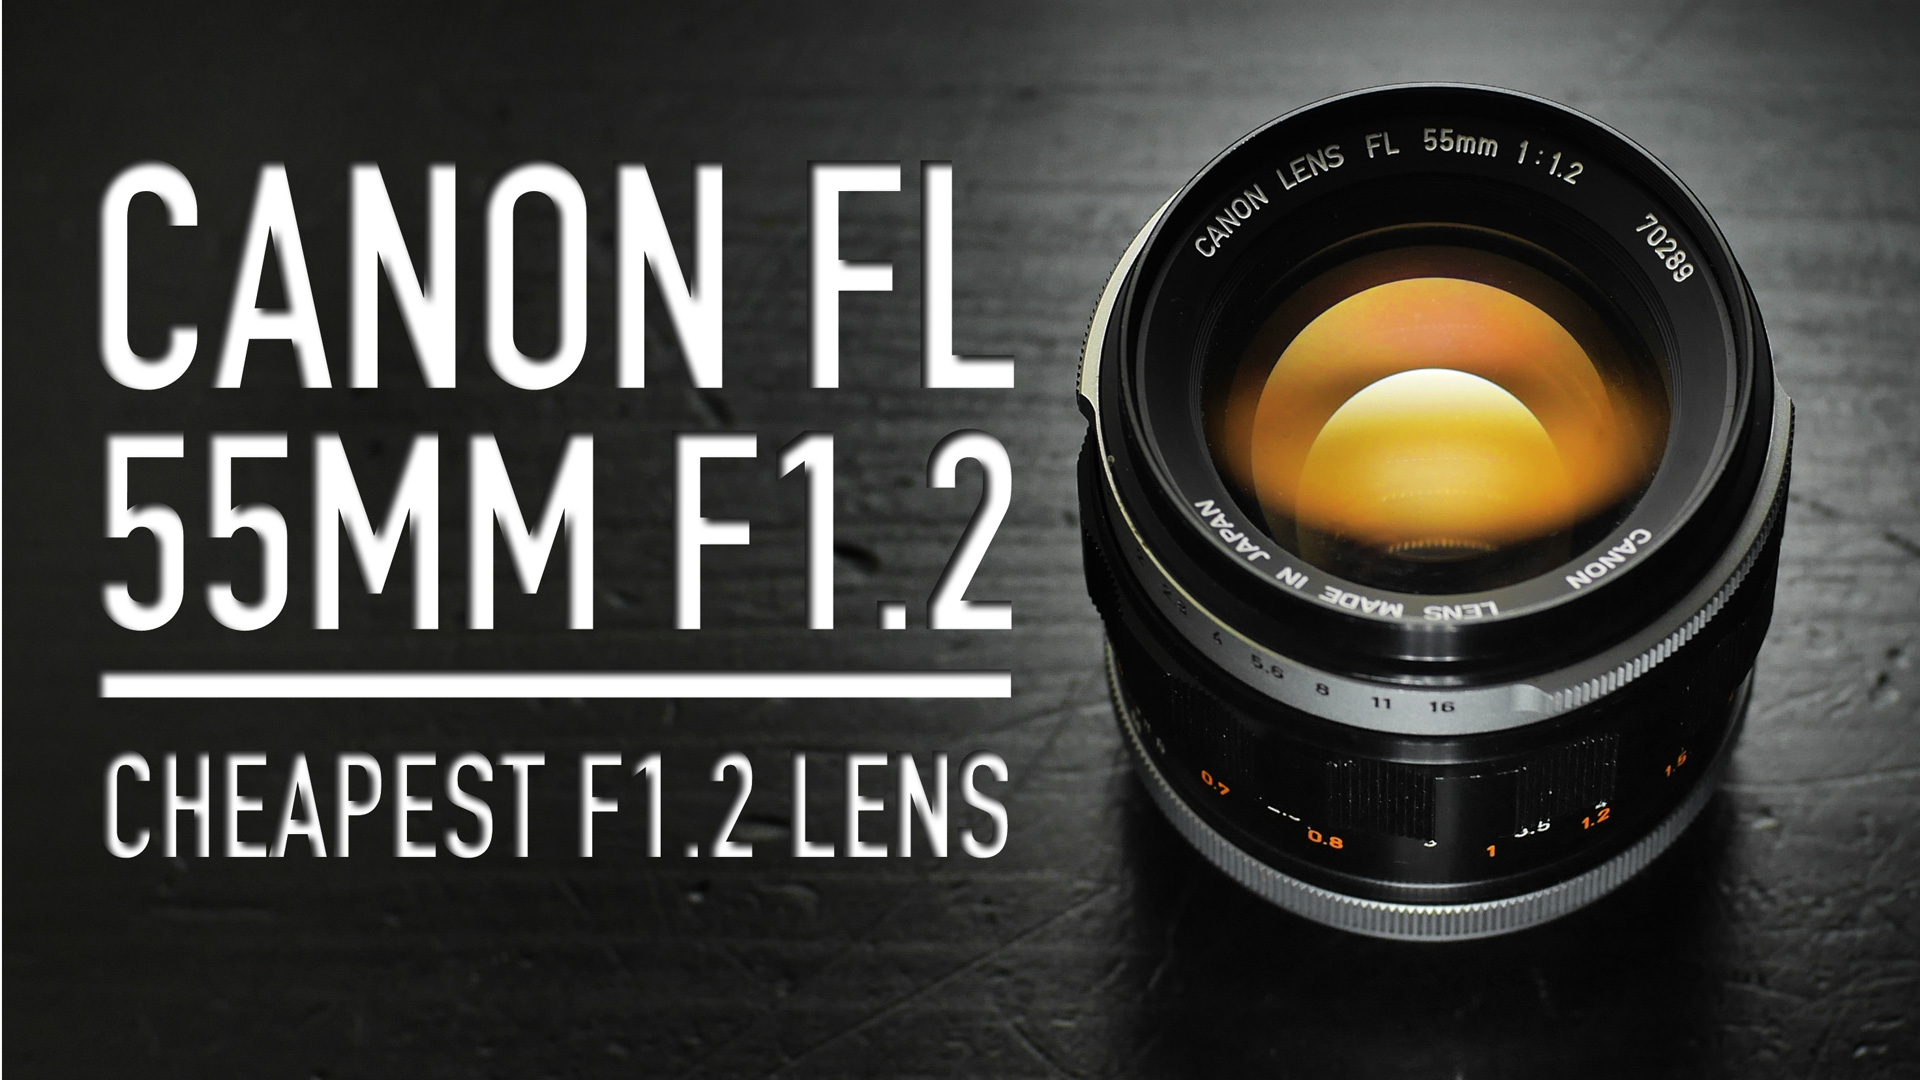 Canon FL 55mm F1.2 REVIEW | Cheapest F/1.2 Lens!